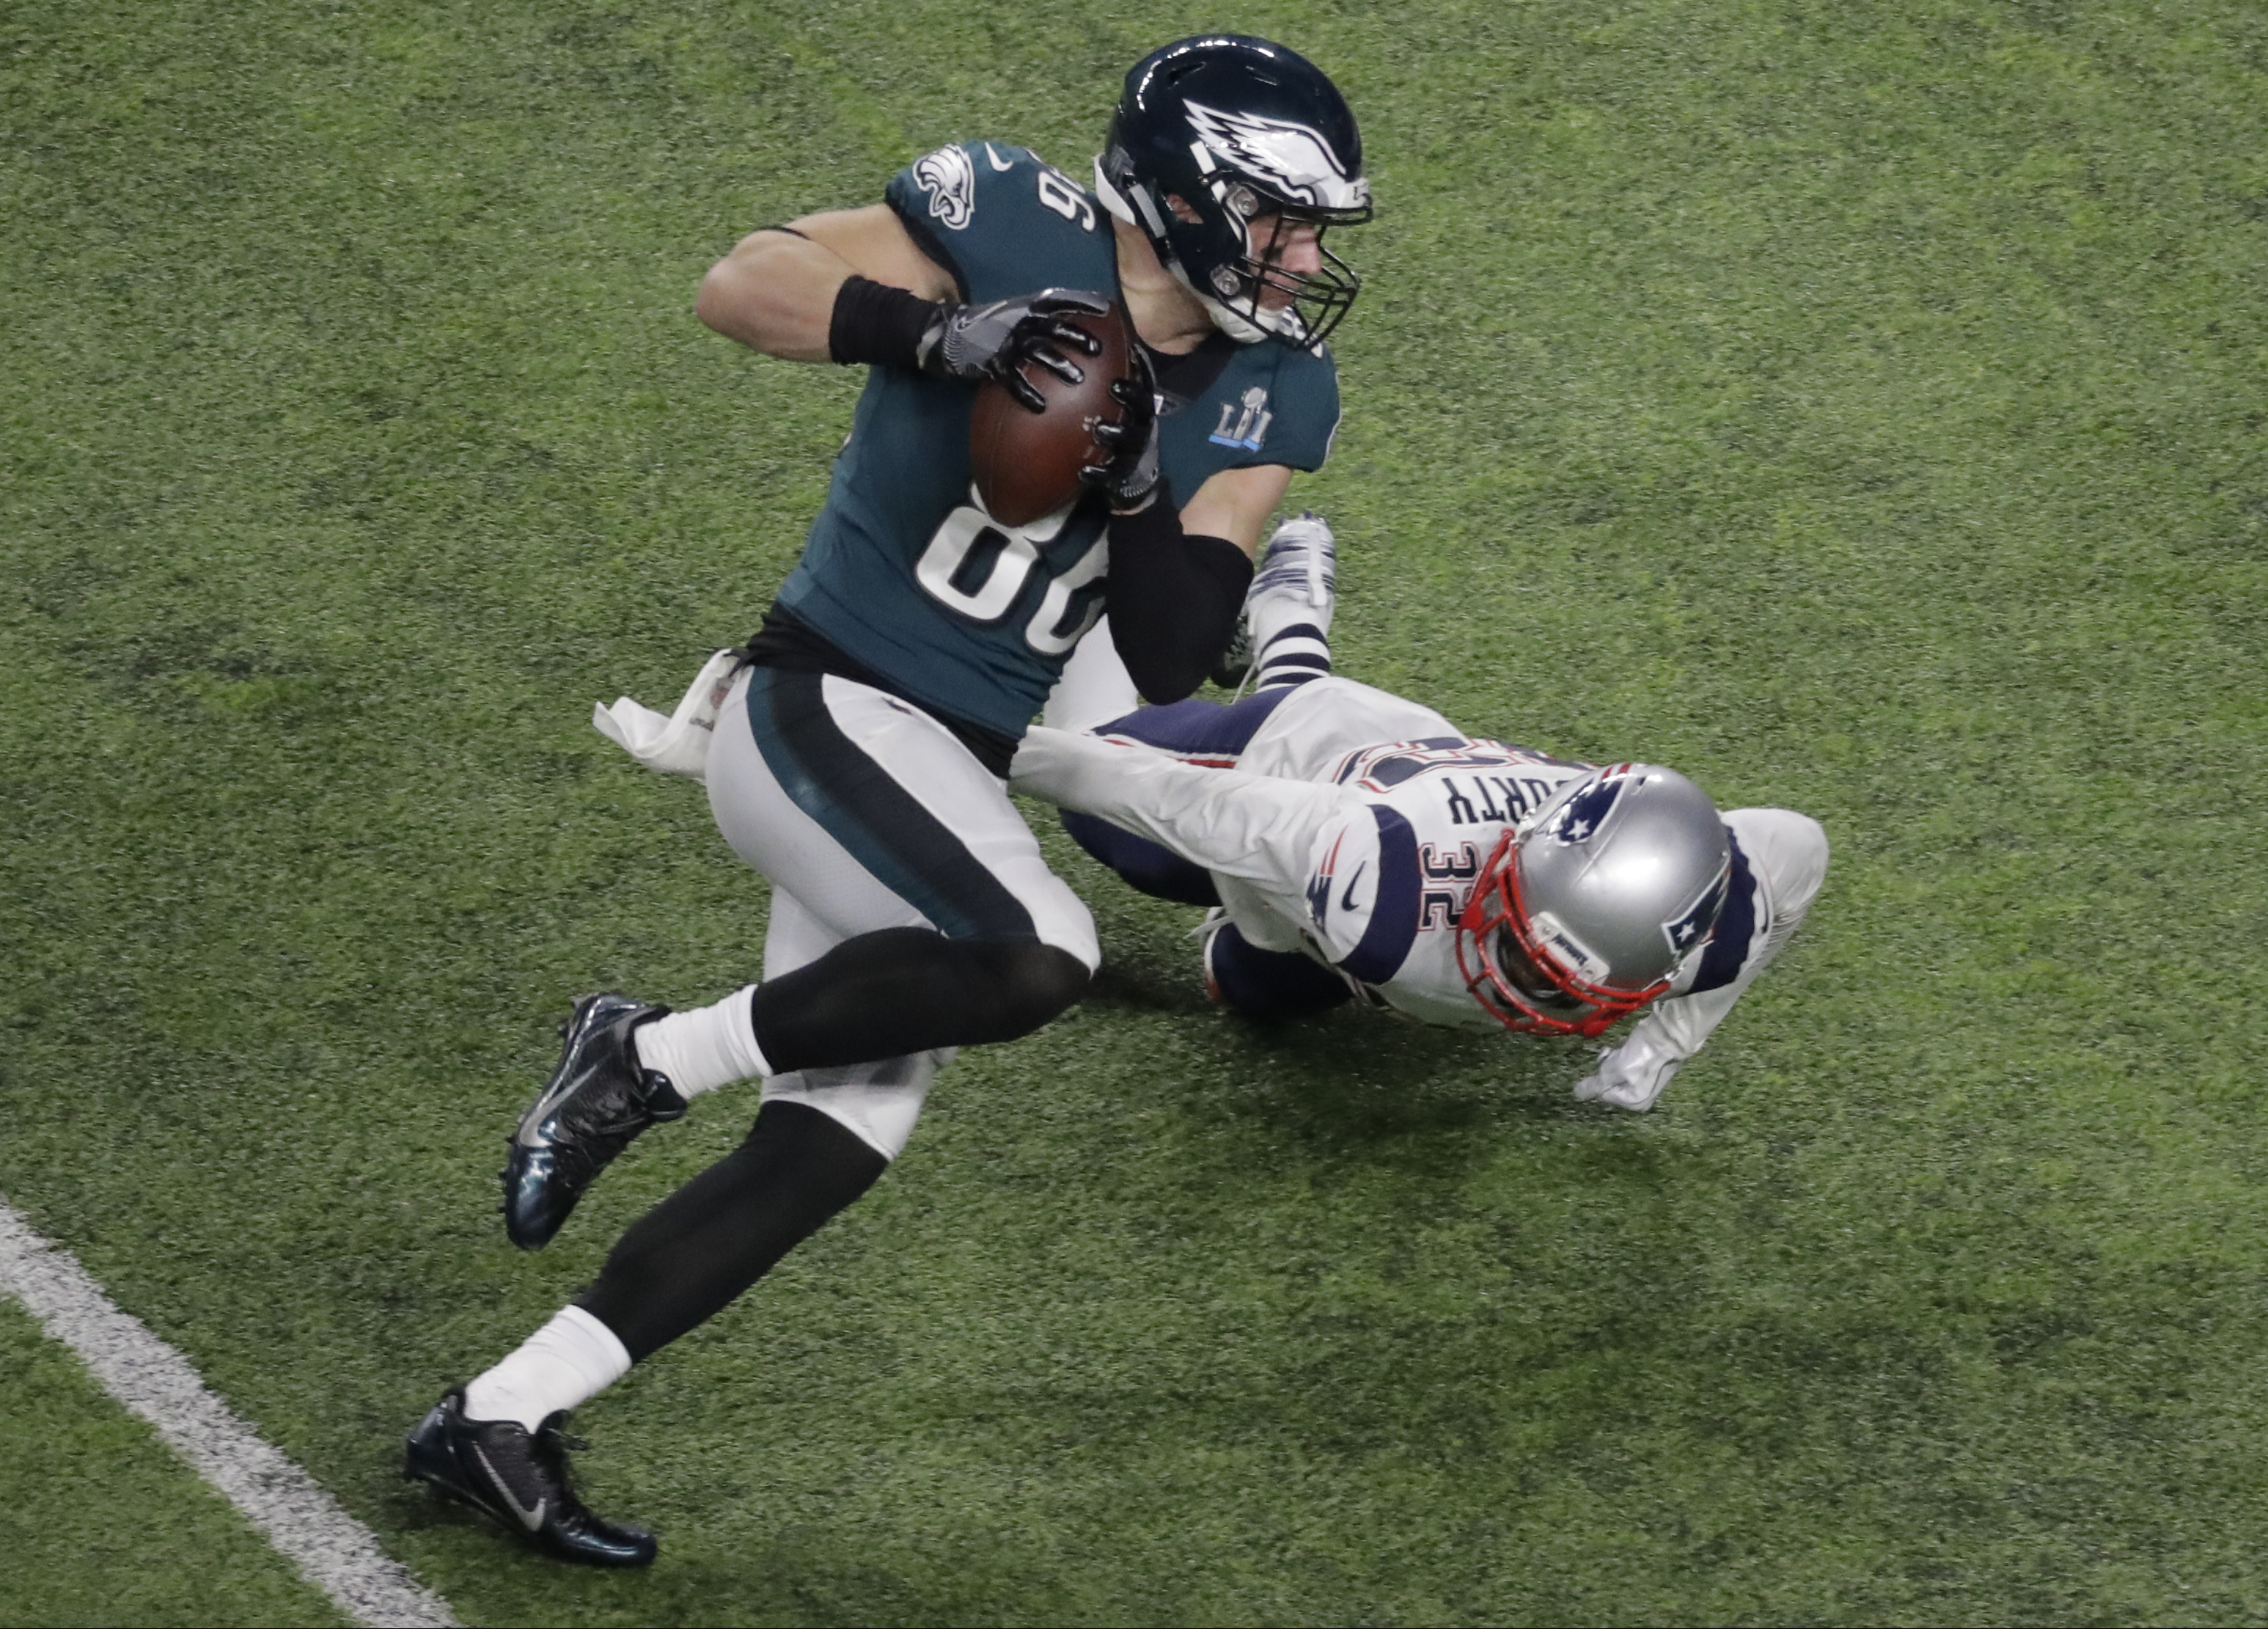 <div class='meta'><div class='origin-logo' data-origin='AP'></div><span class='caption-text' data-credit='AP Photo/Eric Gay'>Philadelphia Eagles tight end Zach Ertz scores past New England Patriots free safety Devin McCourty during the second half of the NFL Super Bowl 52 football game.</span></div>